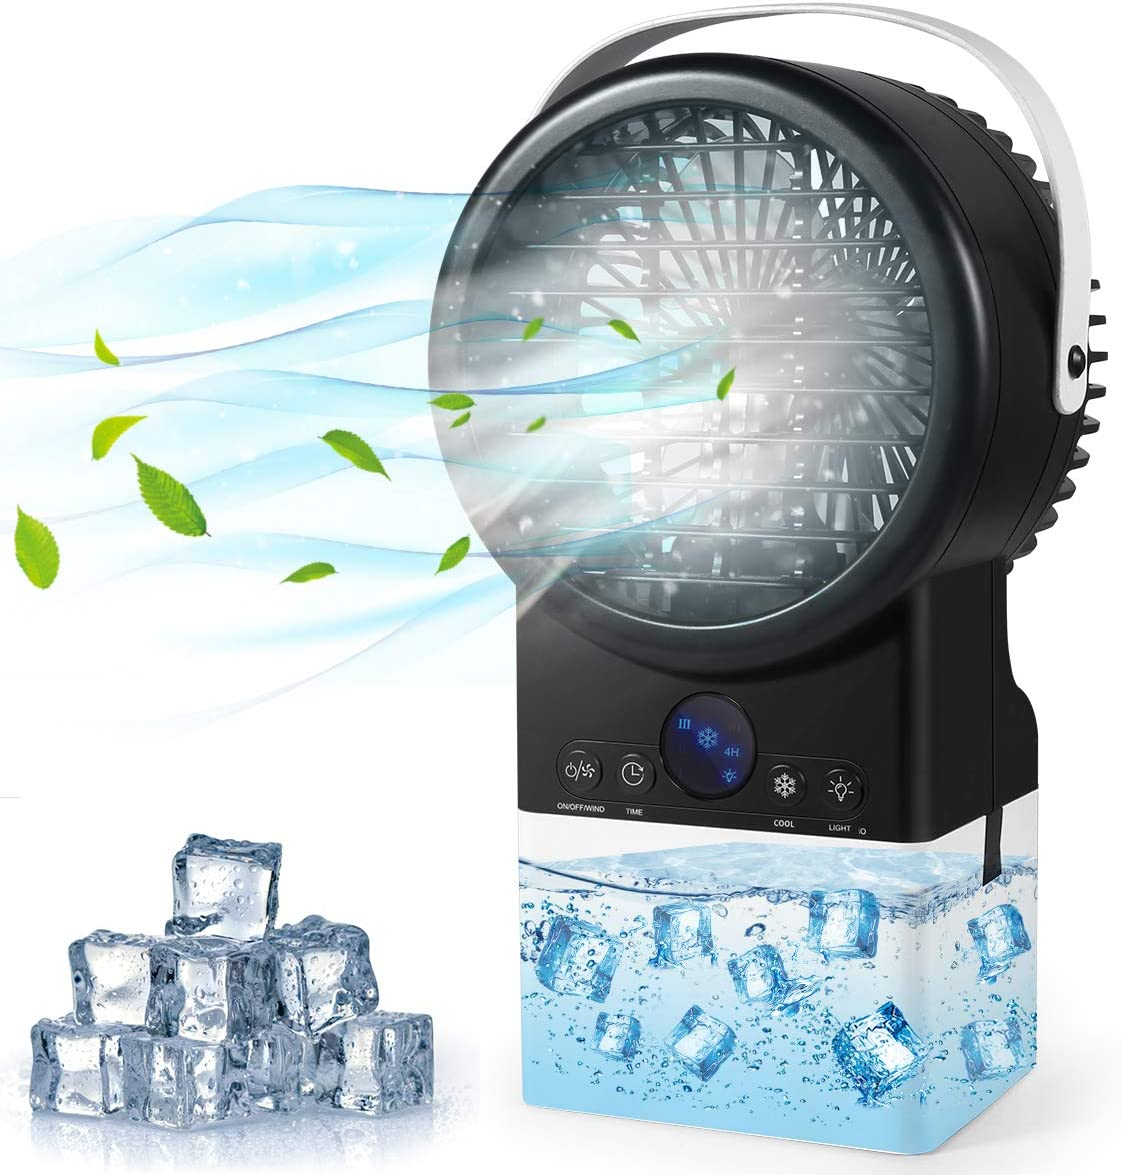 Portable Air Conditioner Fan, Personal Evaporative Air Cooler Super Quiet Desk Fan Air Cooler with 7 Colors LED Light, 3 Speeds, 4 in 1 Timing Air Humidifier Misting Fan for Home Office Room